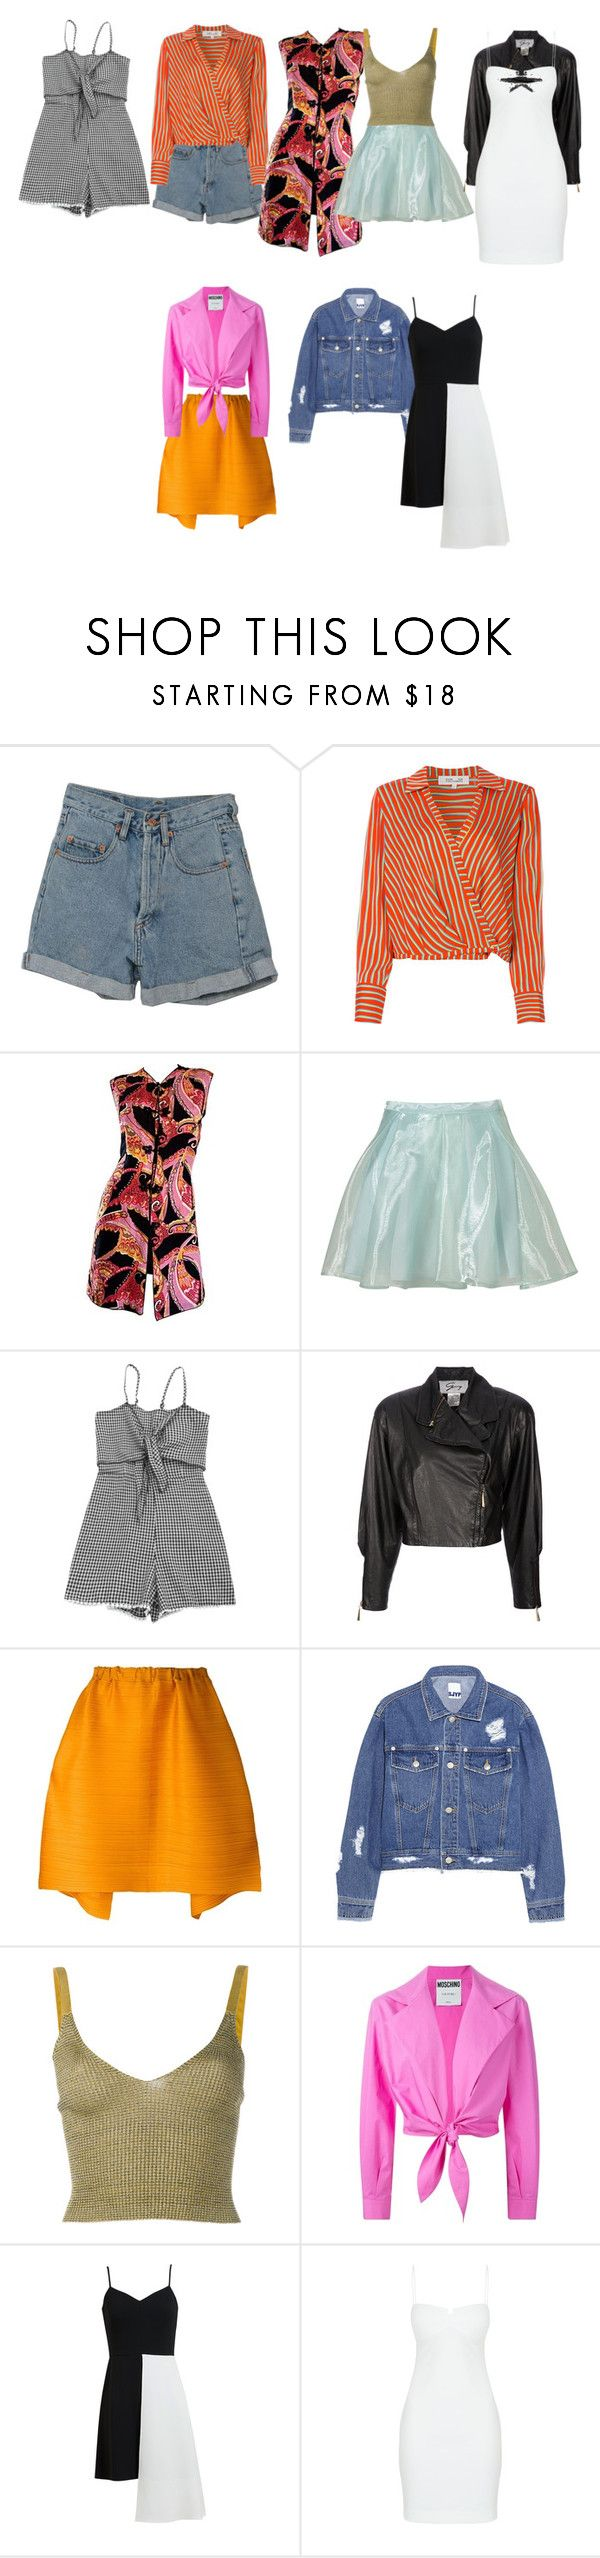 """""""Untitled #7495"""" by aurorazoejadefleurbiancasarah ❤ liked on Polyvore featuring PèPè, Diane Von Furstenberg, Topshop, Genny by Gianni Versace, Pleats Please by Issey Miyake, Steve J & Yoni P, Kenzo, Moschino, Osman and Kendall + Kylie"""